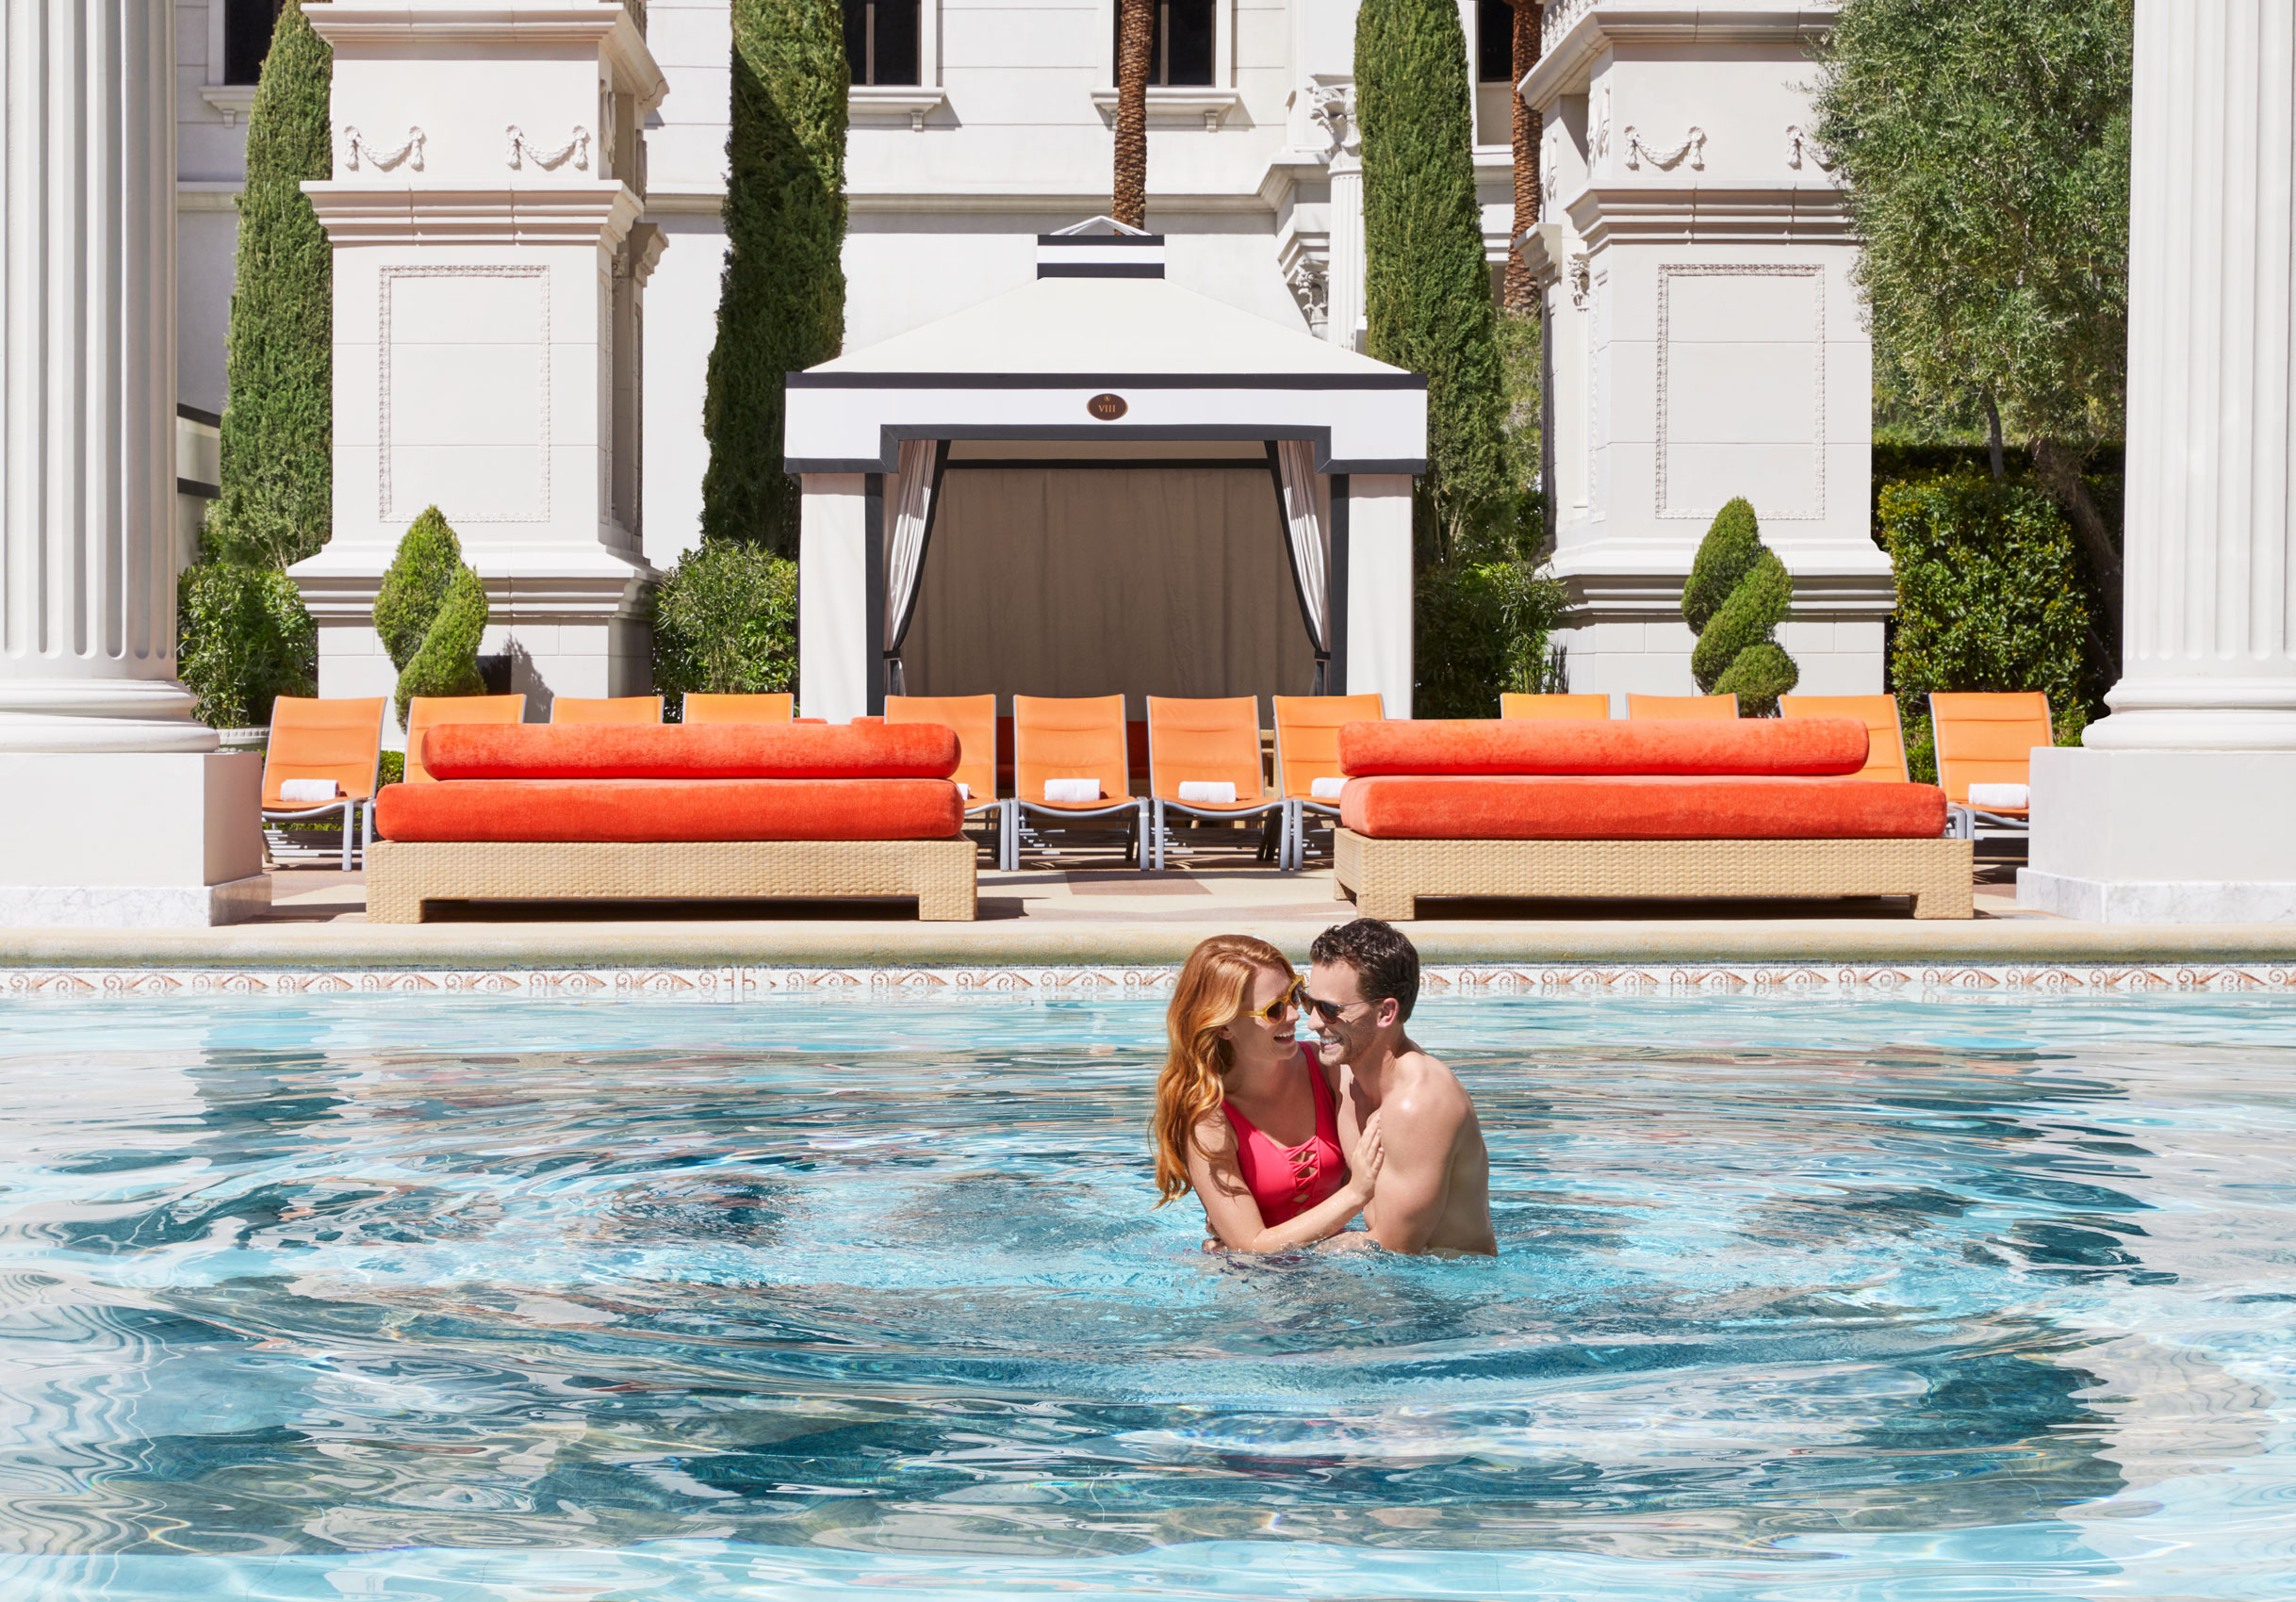 Couple laughing together in a pool on vacation - Kimberly Genevieve Los Angeles Lifestyle Advertising Photographer